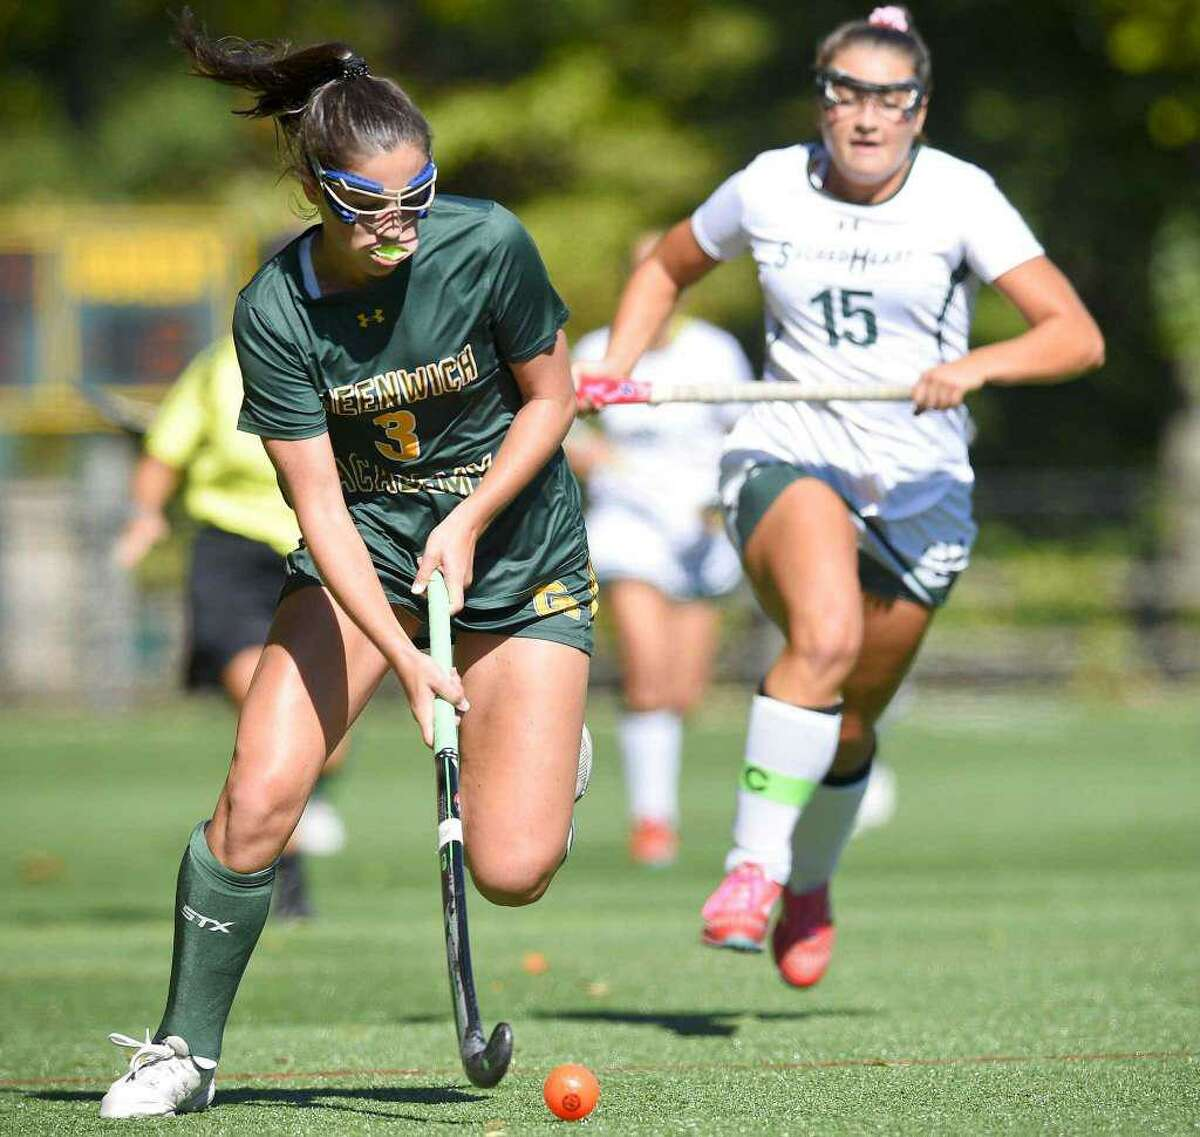 Lily Murray, left moves the ball up the field for the Greenwich Academy field hockey team in its game against Sacred Heart Greenwich in 2010. Murray is one of the senior captains of the Greenwich Academy field hockey team this season.